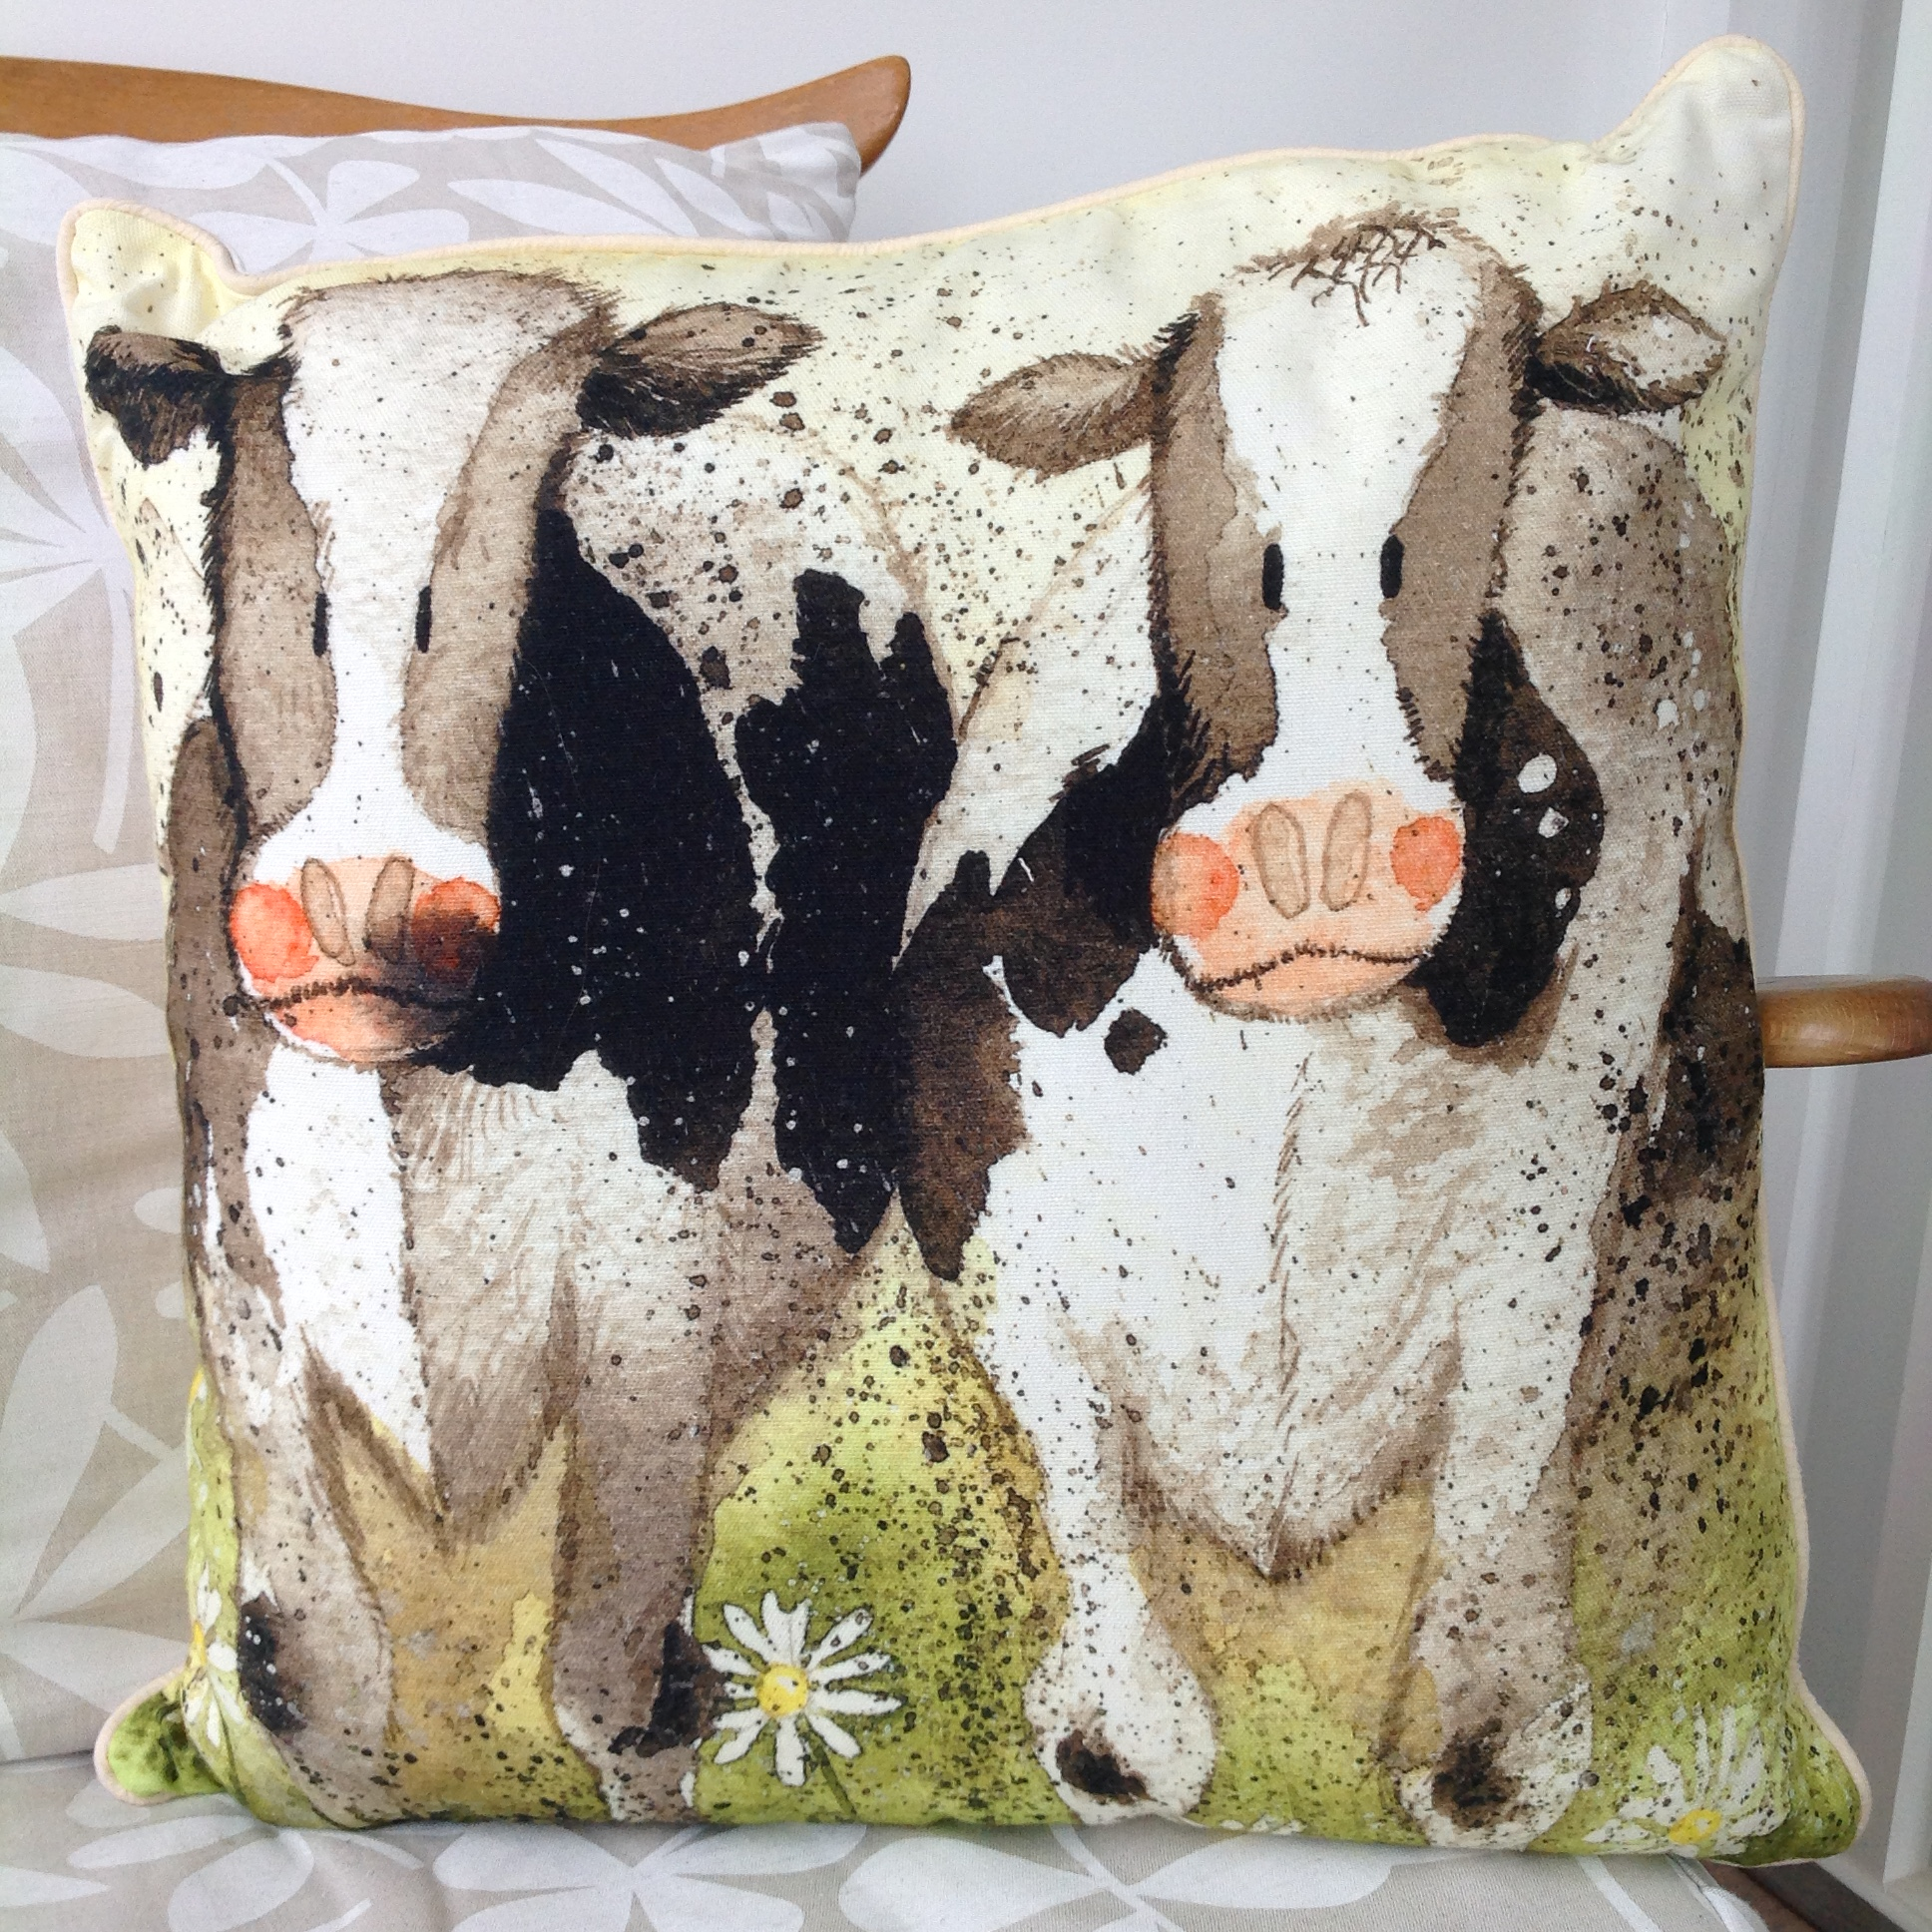 catalog/products/cushions/curious-cows-cushion.JPG